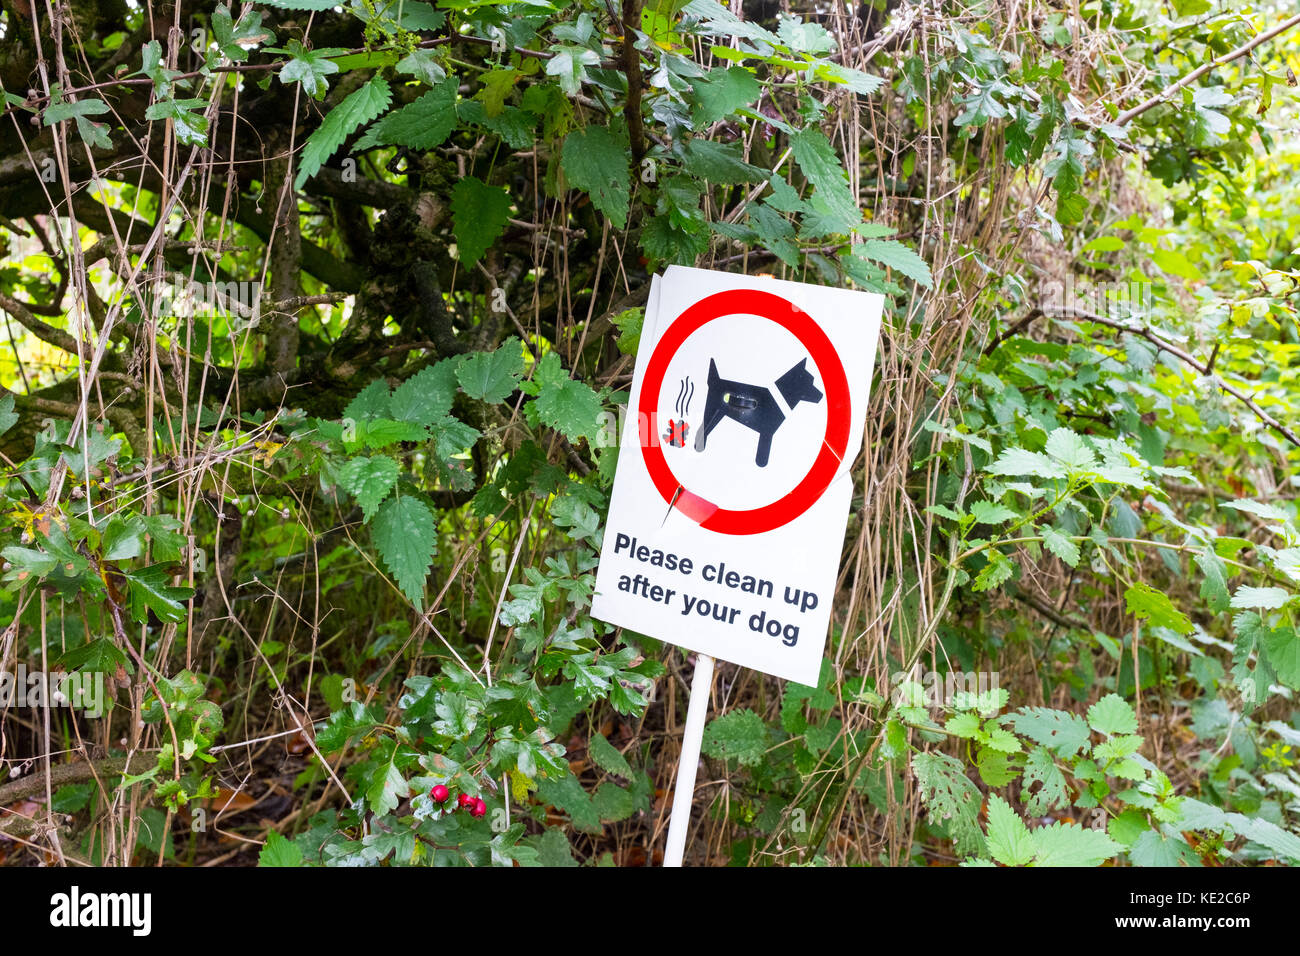 Request to clean up after your dog - Stock Image